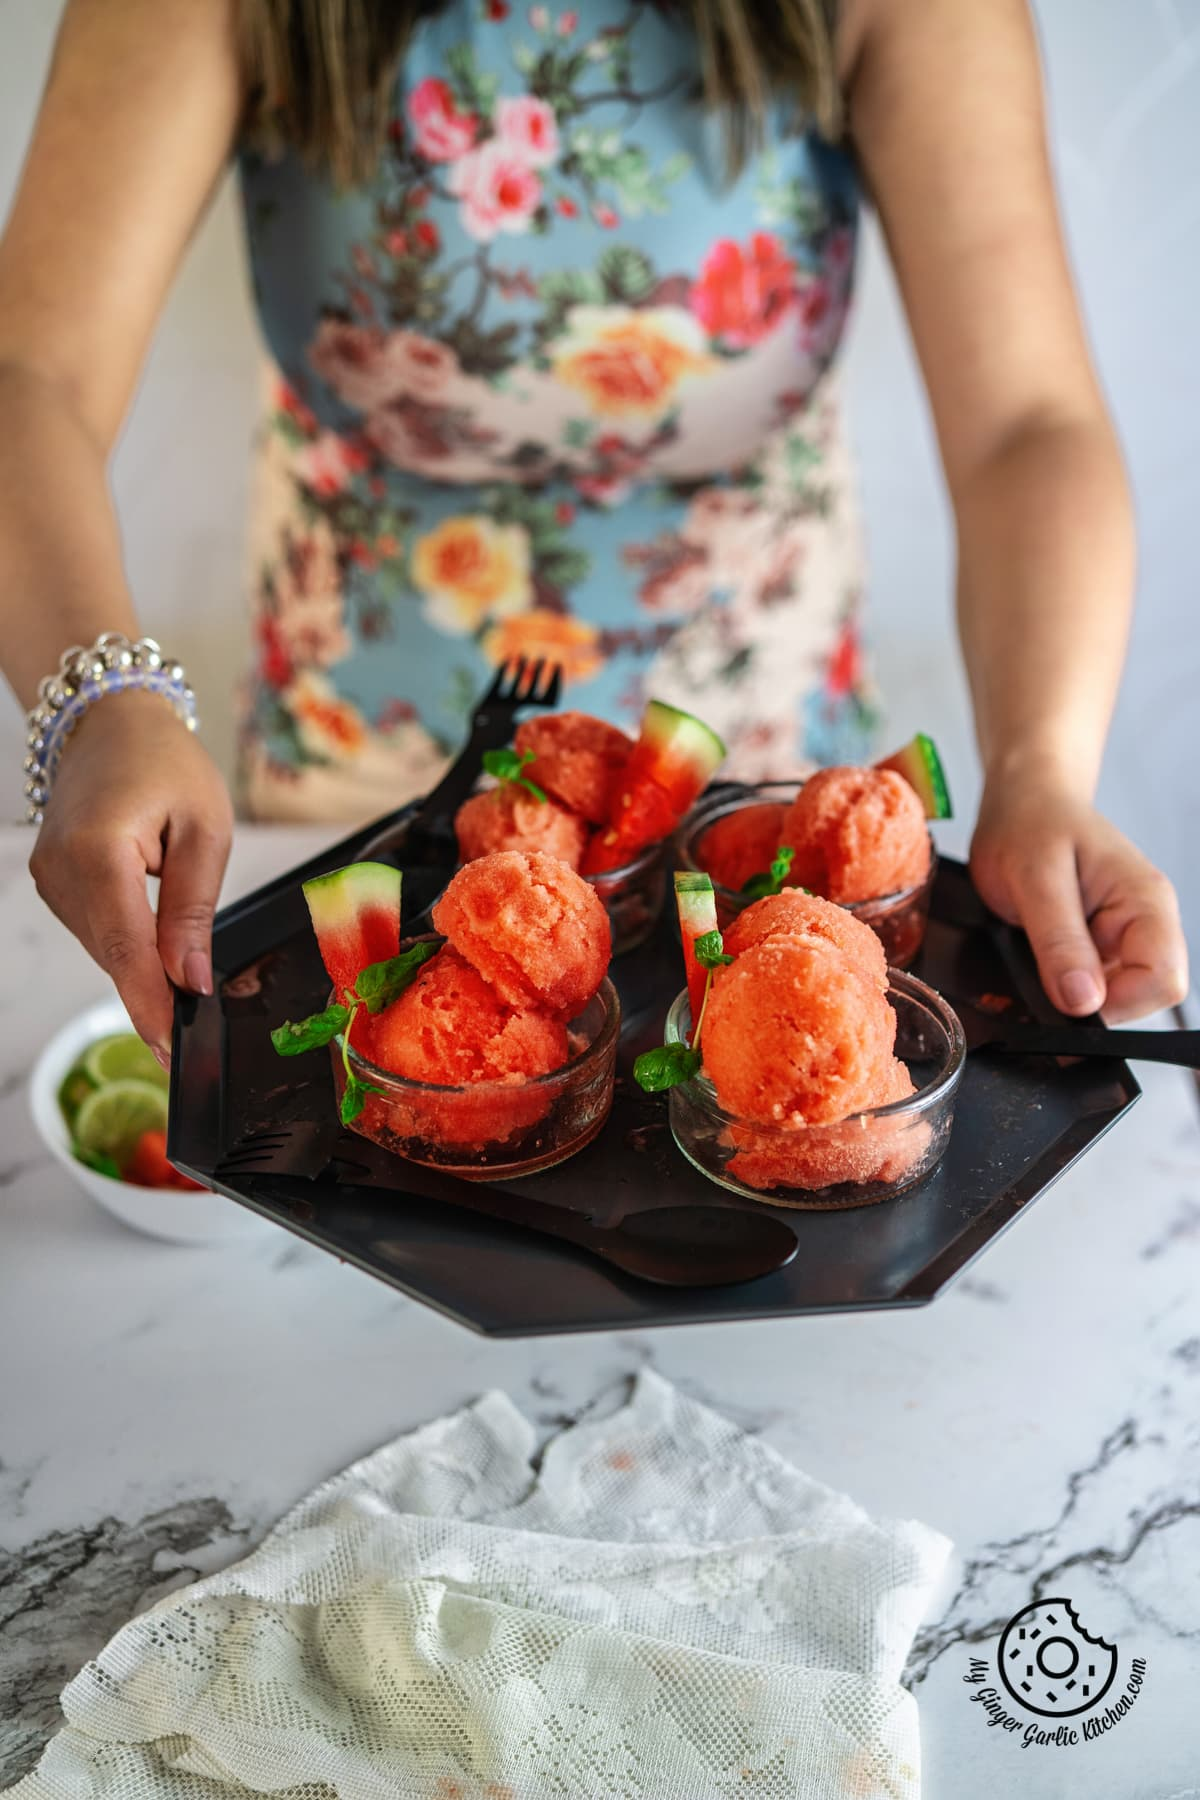 a female holding watermelon sorbet bowls tray